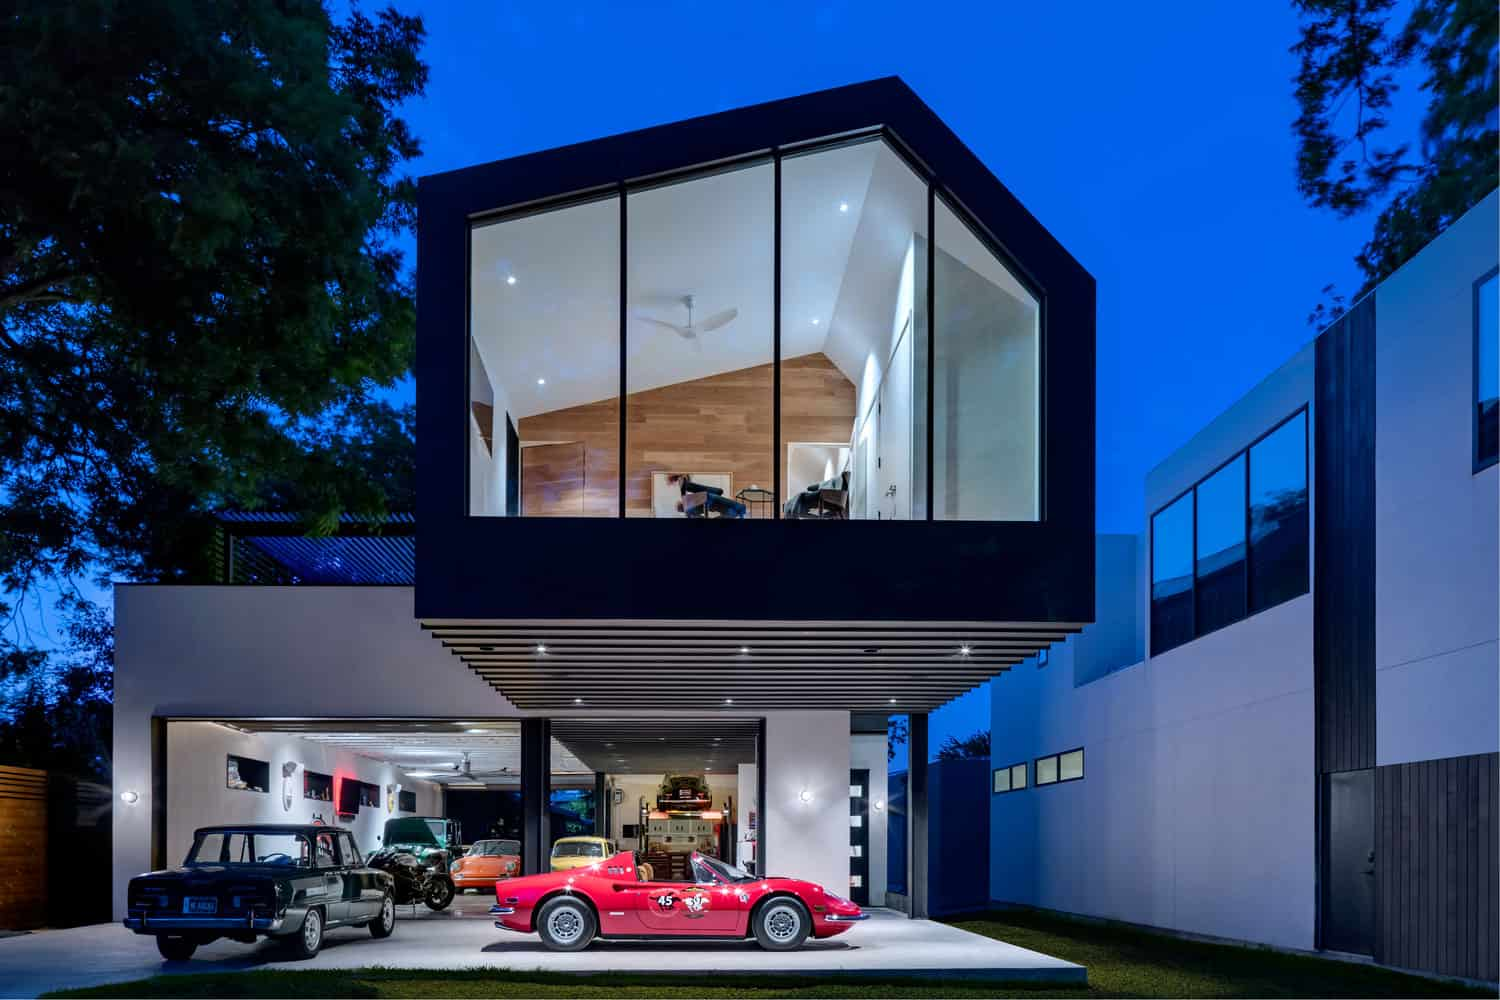 Modern and Functional House which Doubles as a Car Collector's Garage and Private Residence